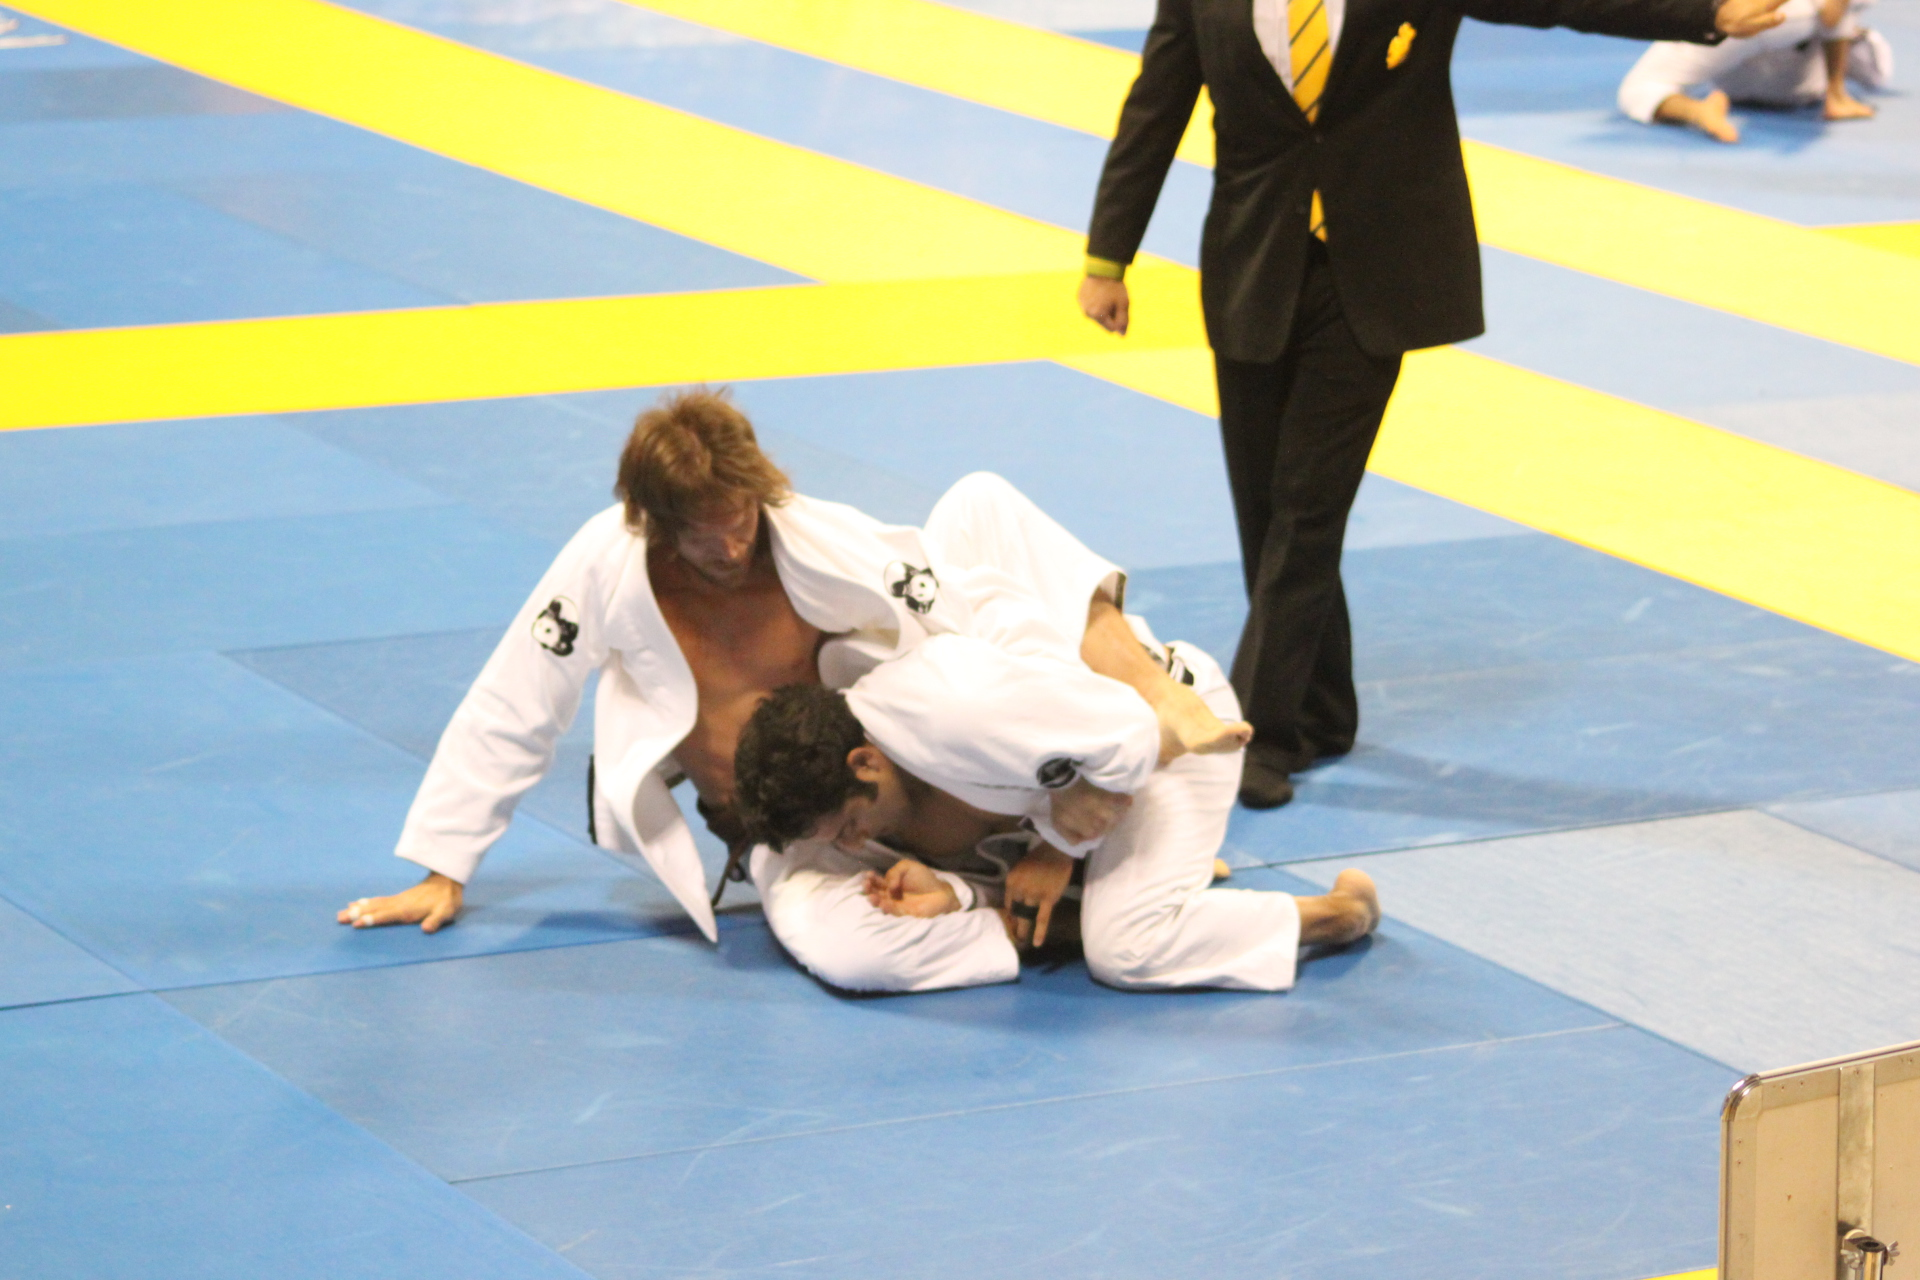 brazilian jiu jitsu back take from turtle position